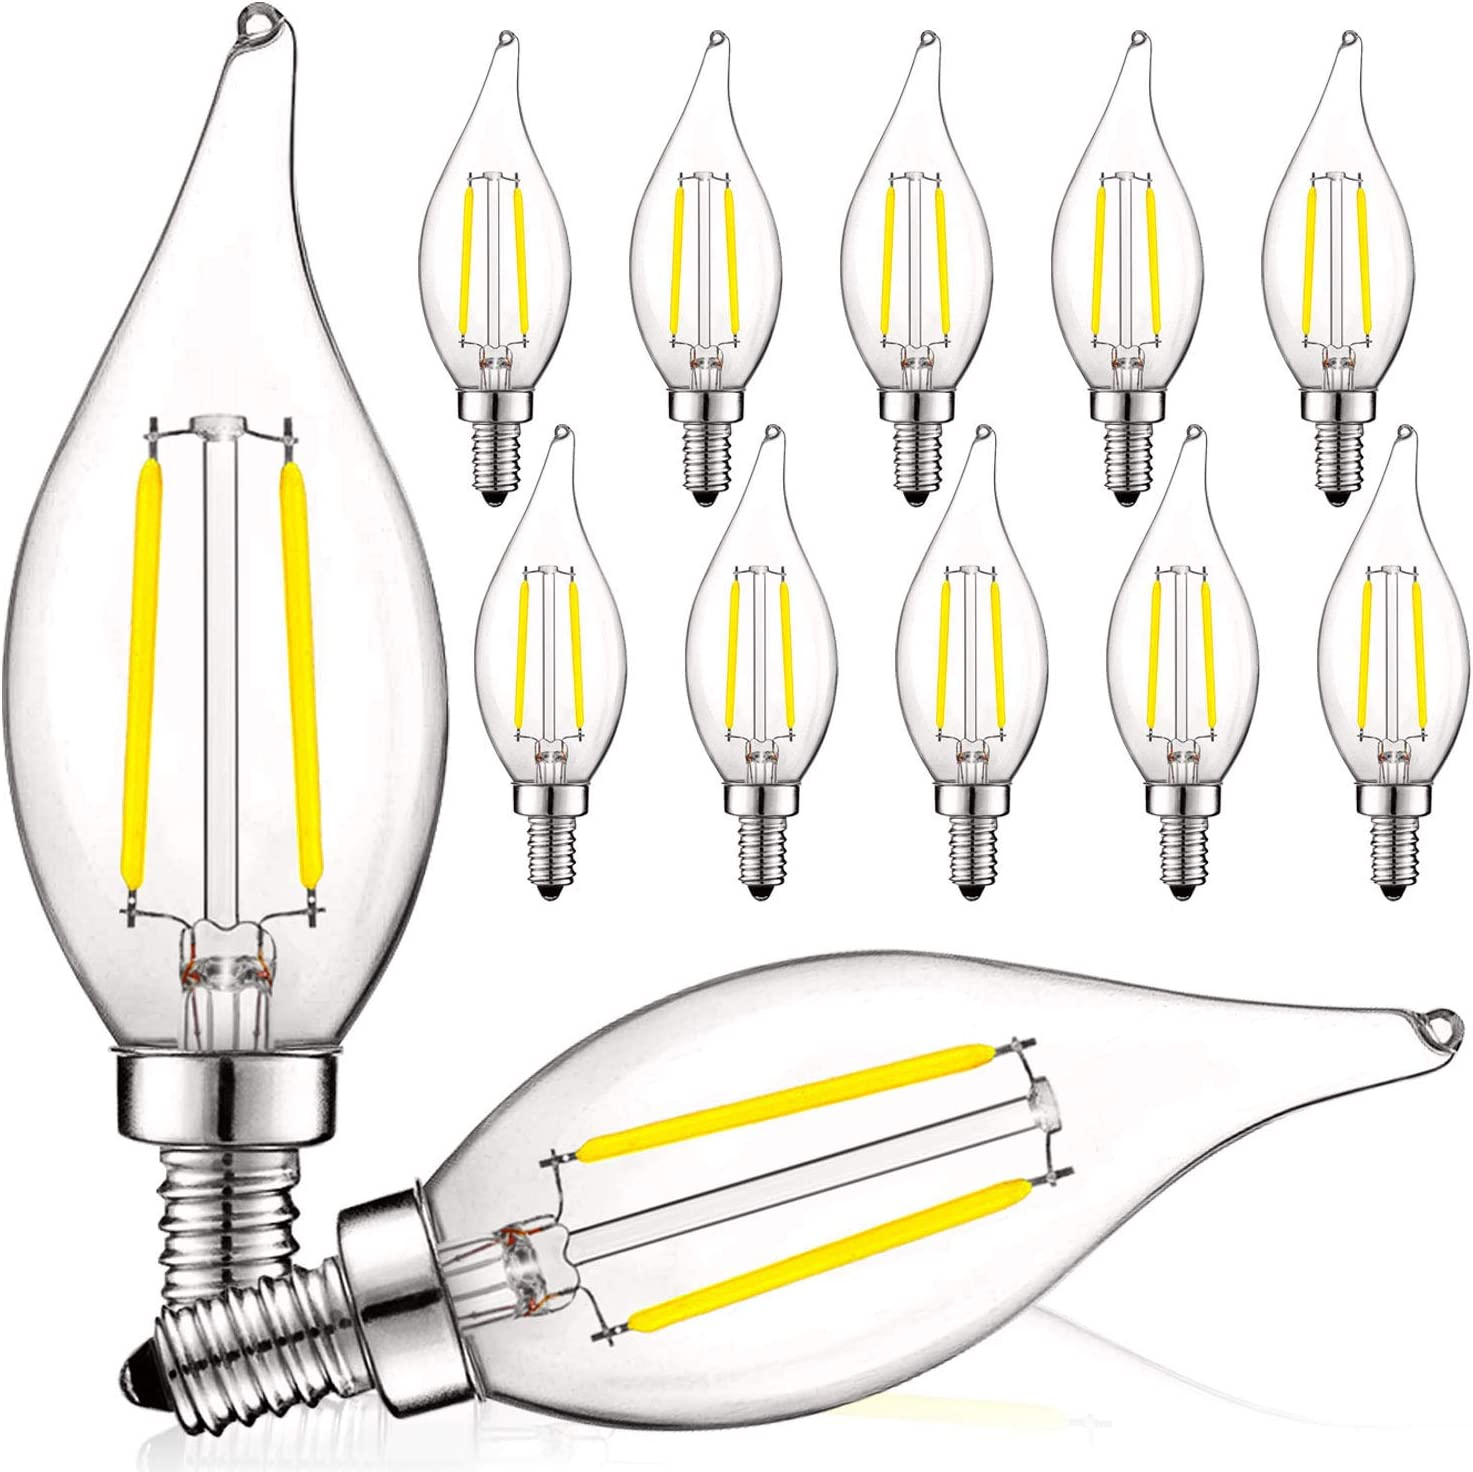 Luxrite 4W Vintage Candelabra LED Bulbs Dimmable, 400 Lumens, 5000K Bright White, LED Chandelier Light Bulbs 40W Equivalent, Flame Clear Glass, Filament LED Candle Bulb, UL Listed, E12 Base (12 Pack) - -